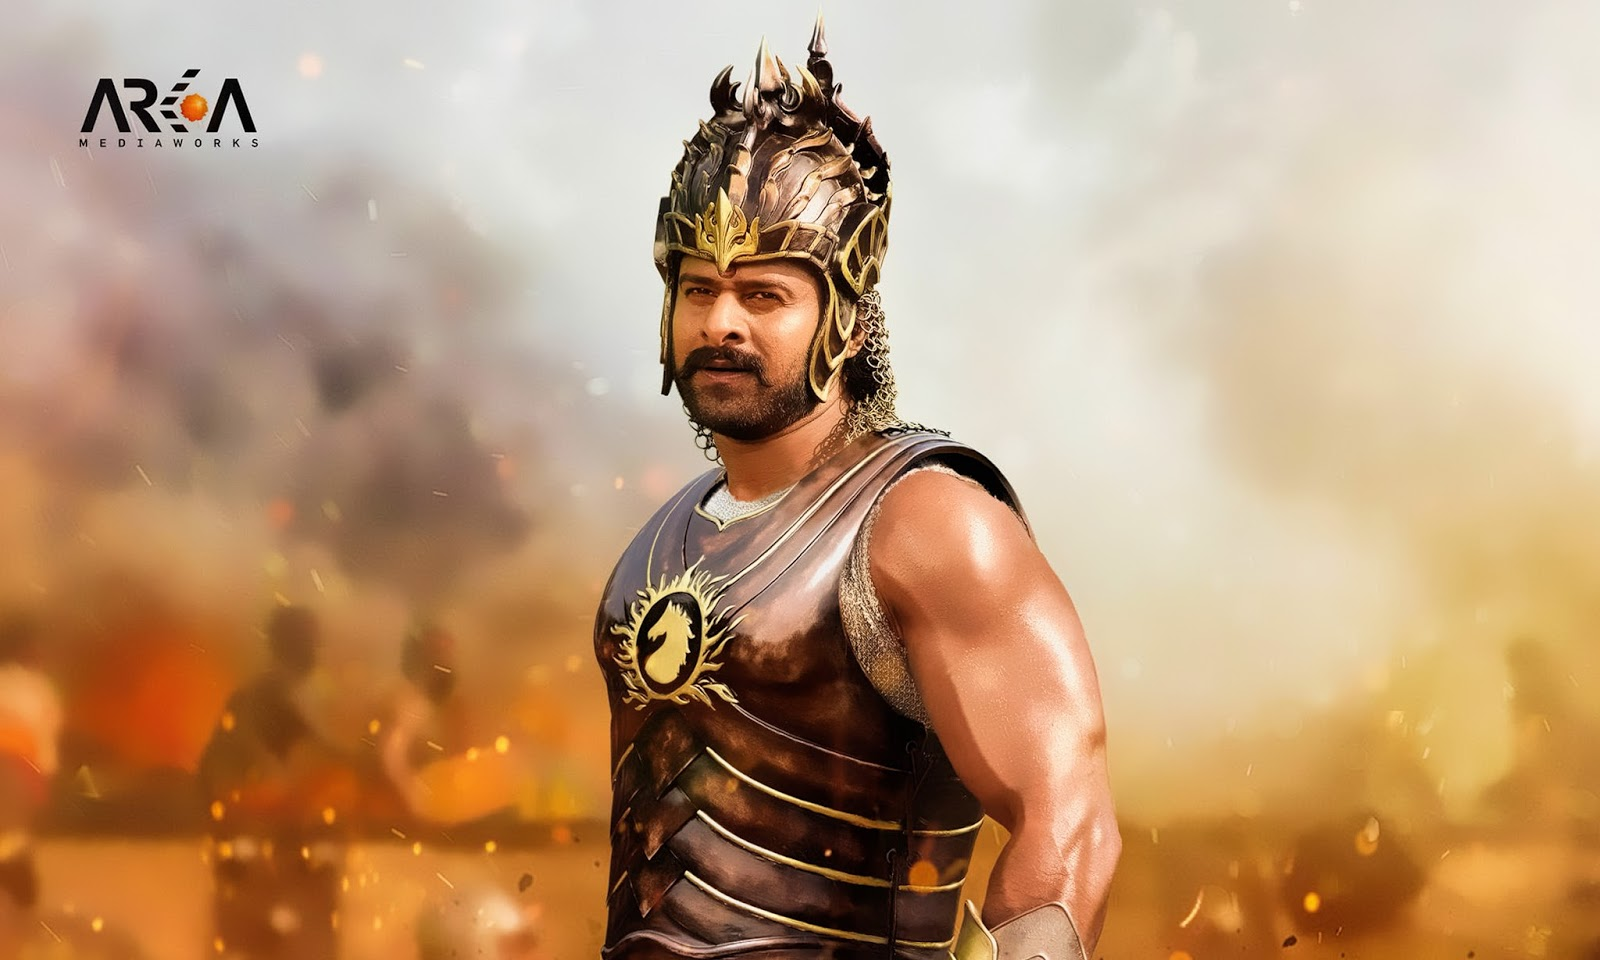 Hd wallpaper bahubali 2 - Bahubali Hd Wallpapers